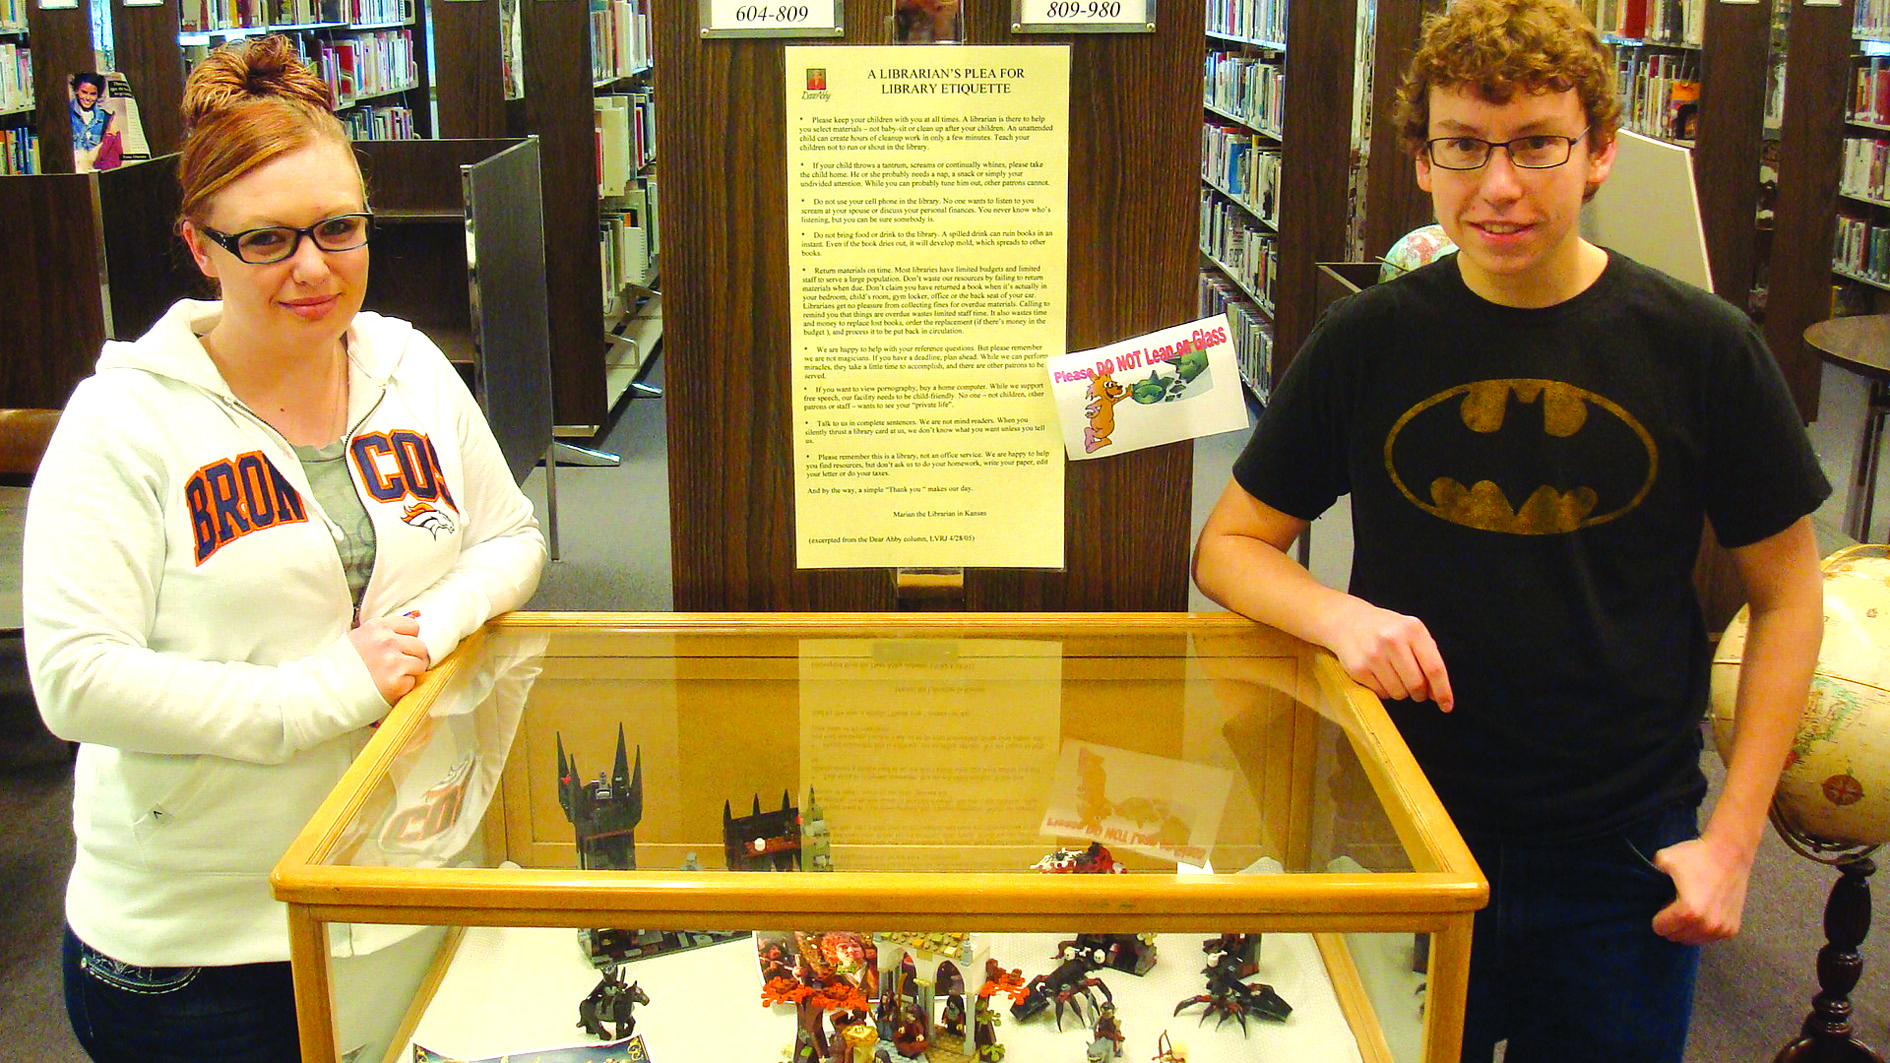 Lego display at Library1